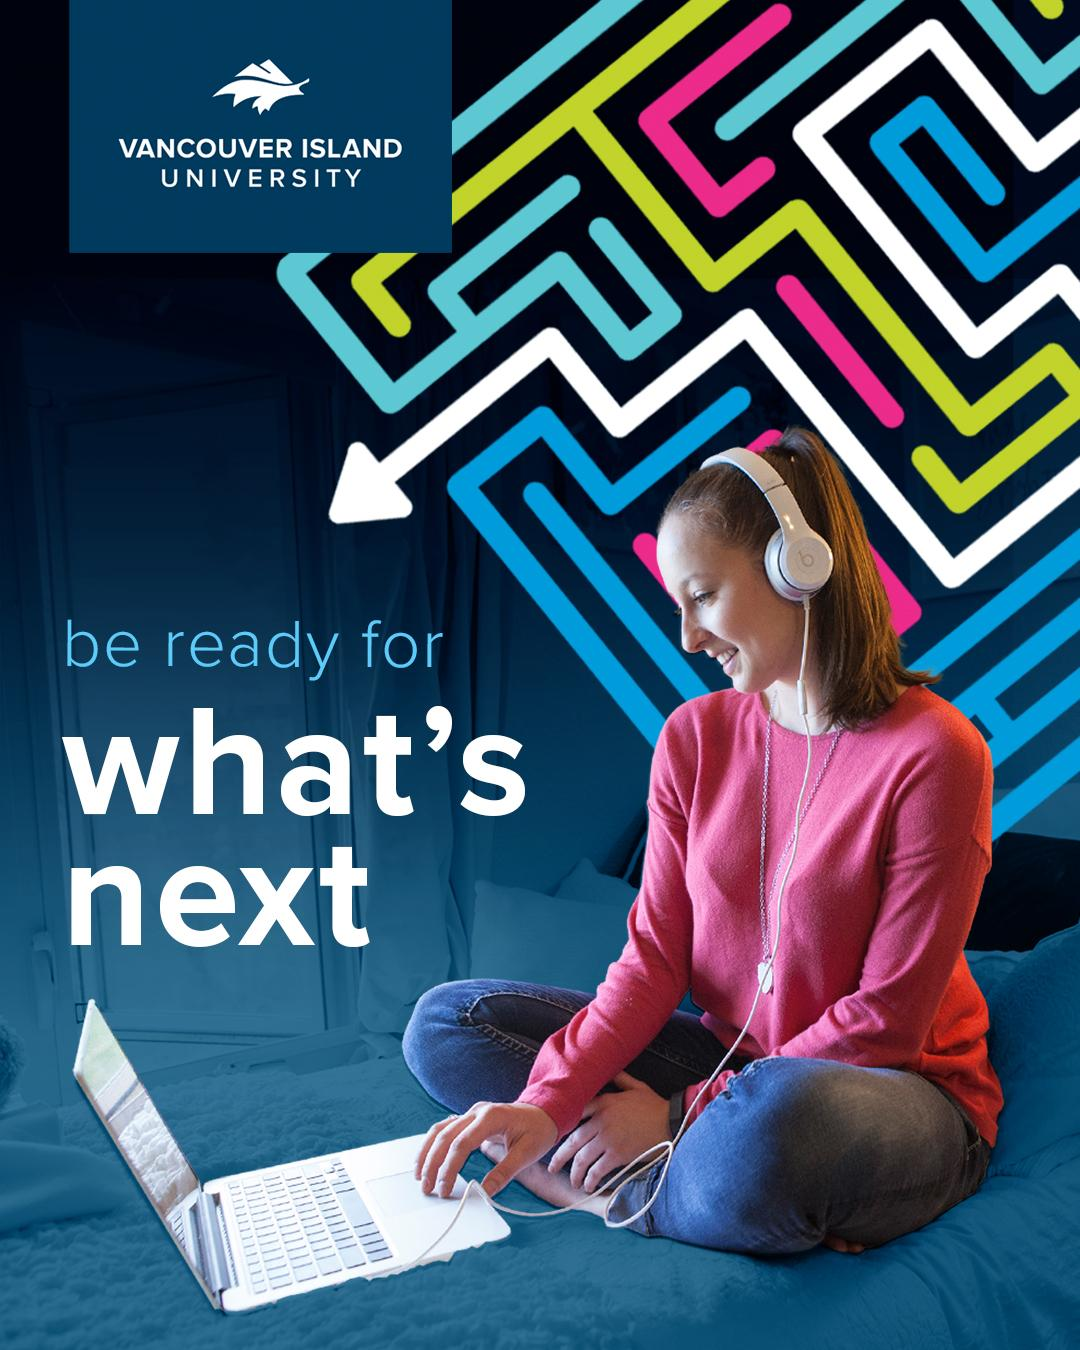 VIU invites future students to have a conversation about how VIU can help them achieve their future goals